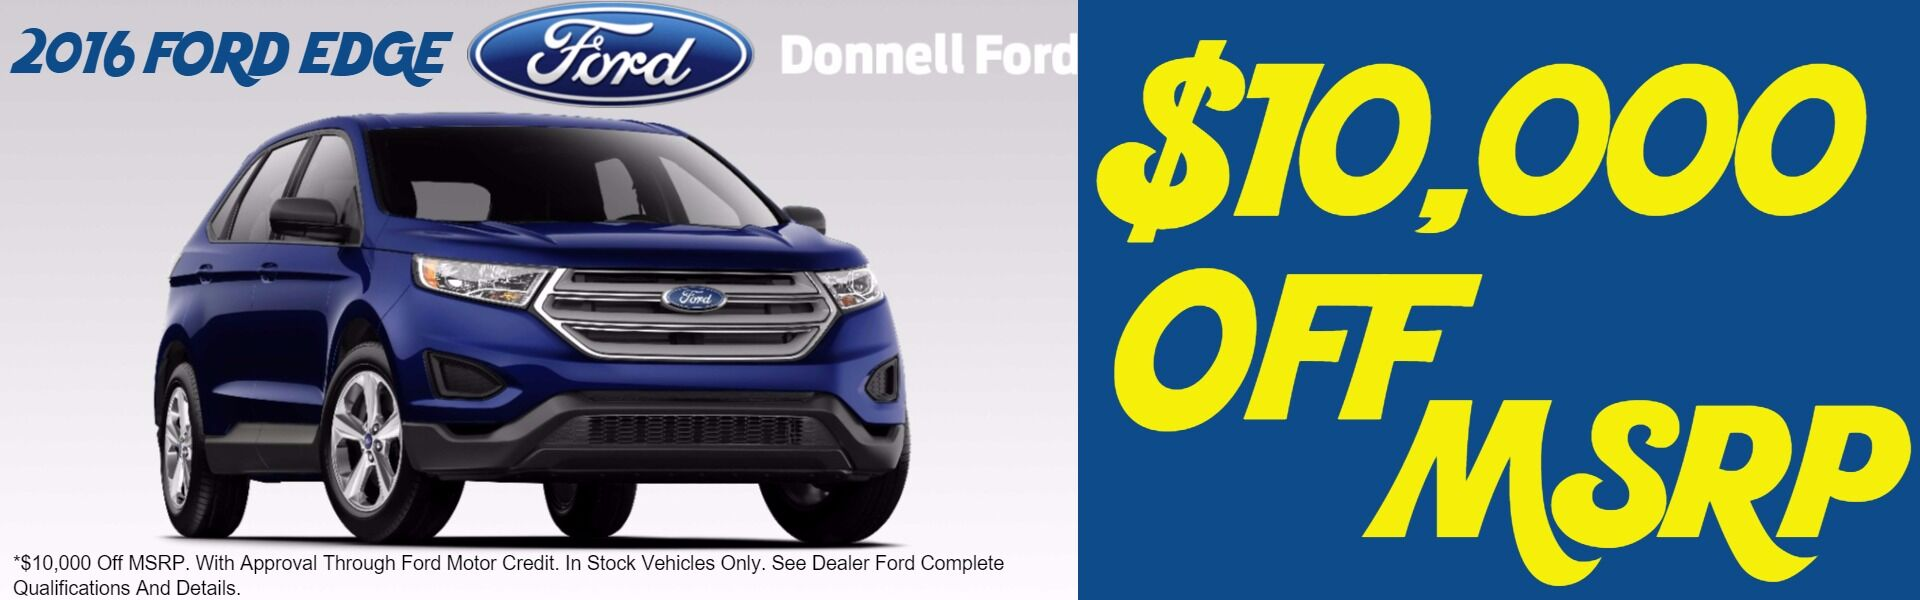 Donnell Ford Edge $10,000 Off MSRP